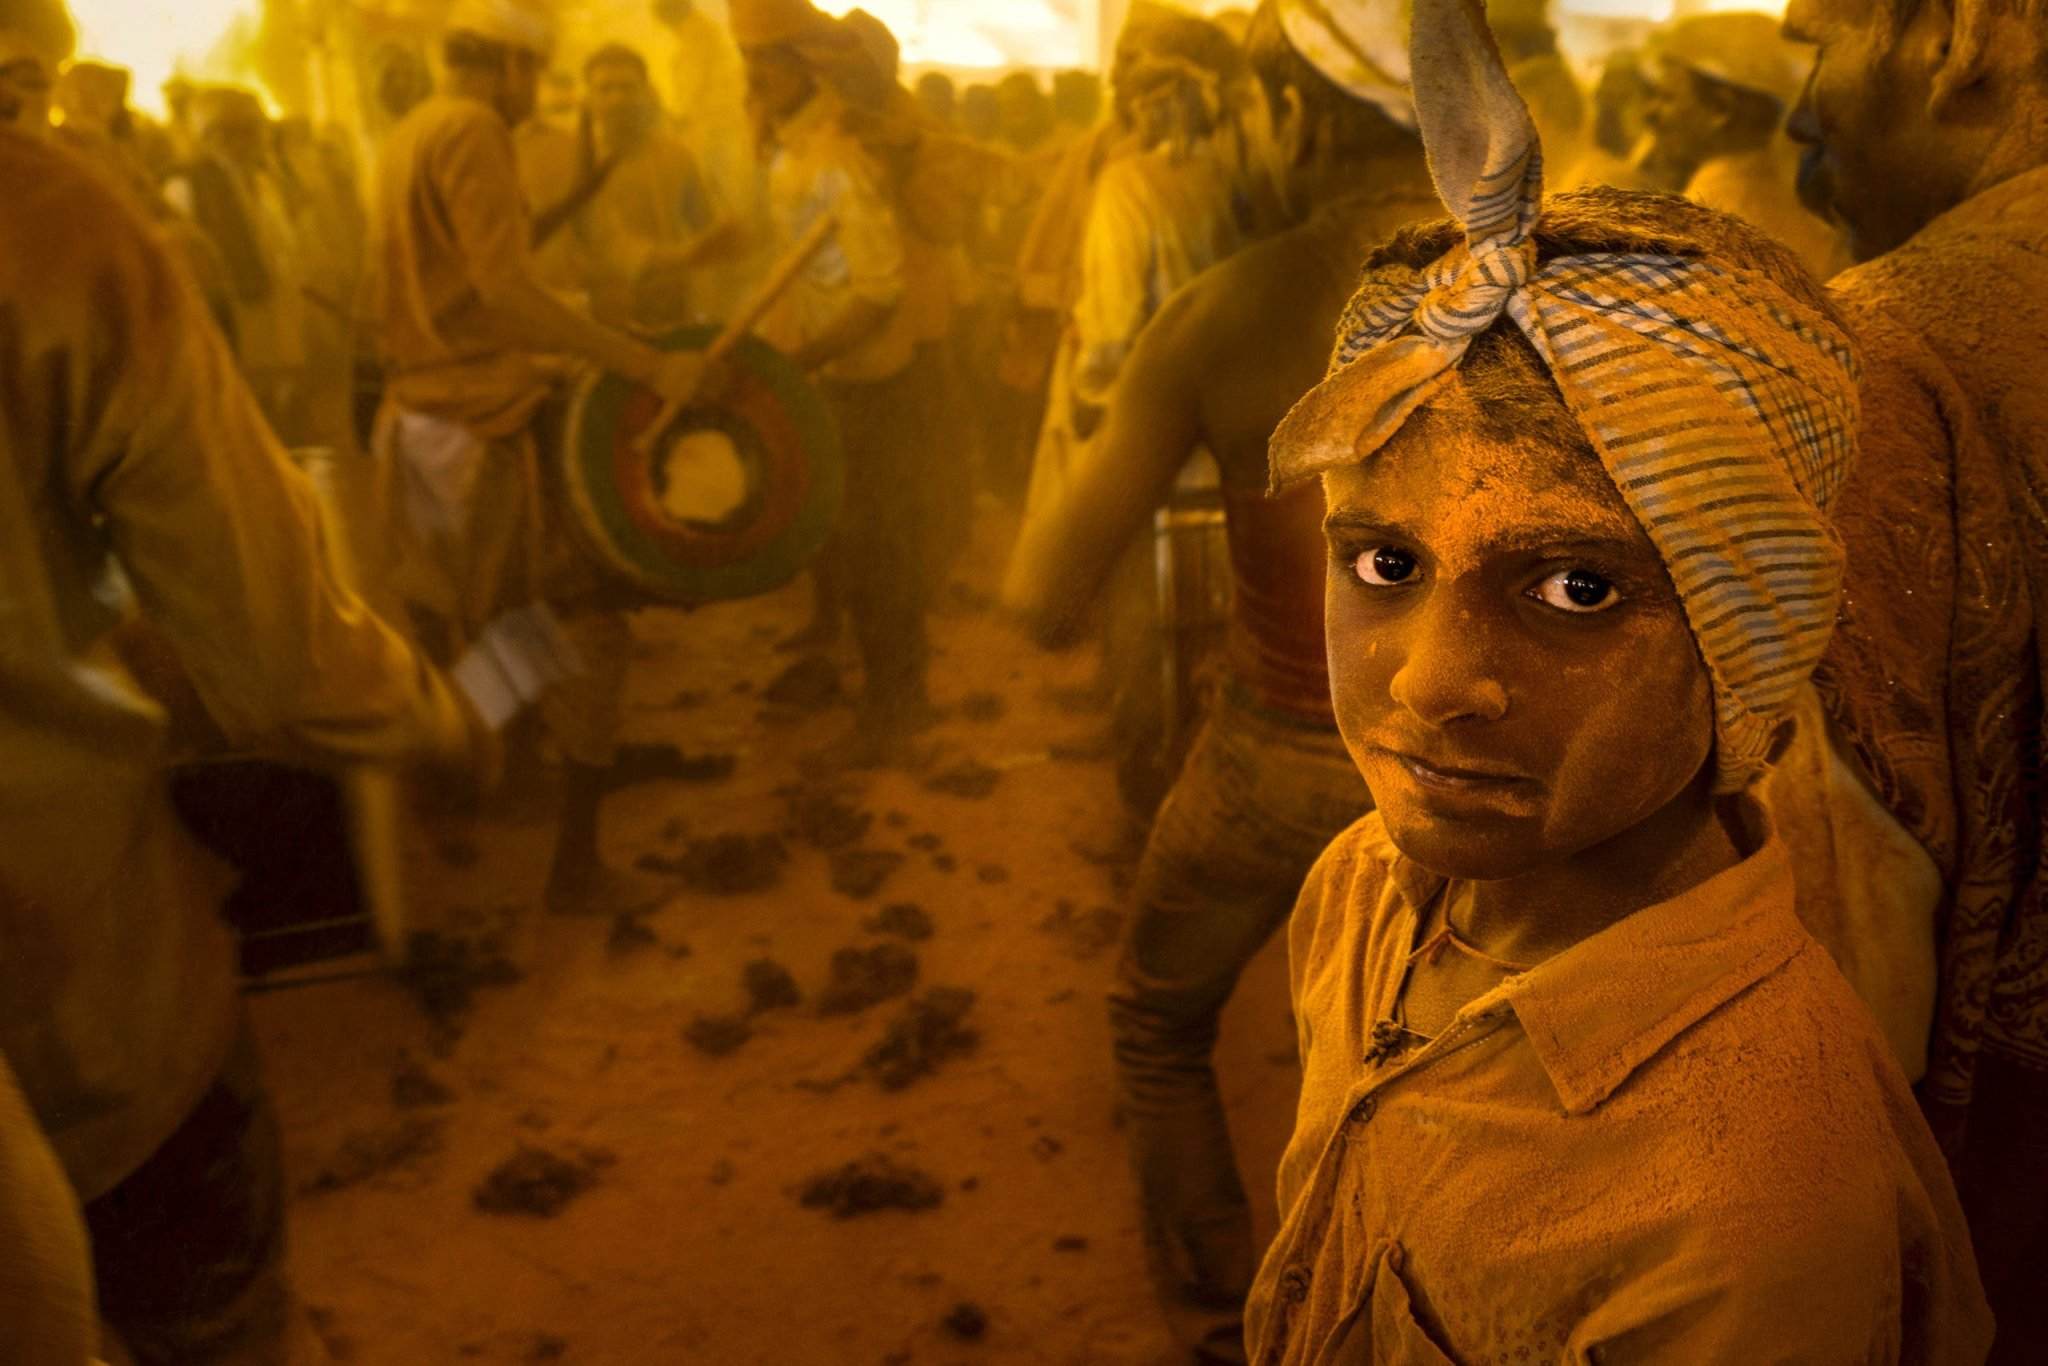 The Golden Hues of the Haldi Festival are Perfect for Documentary Photos